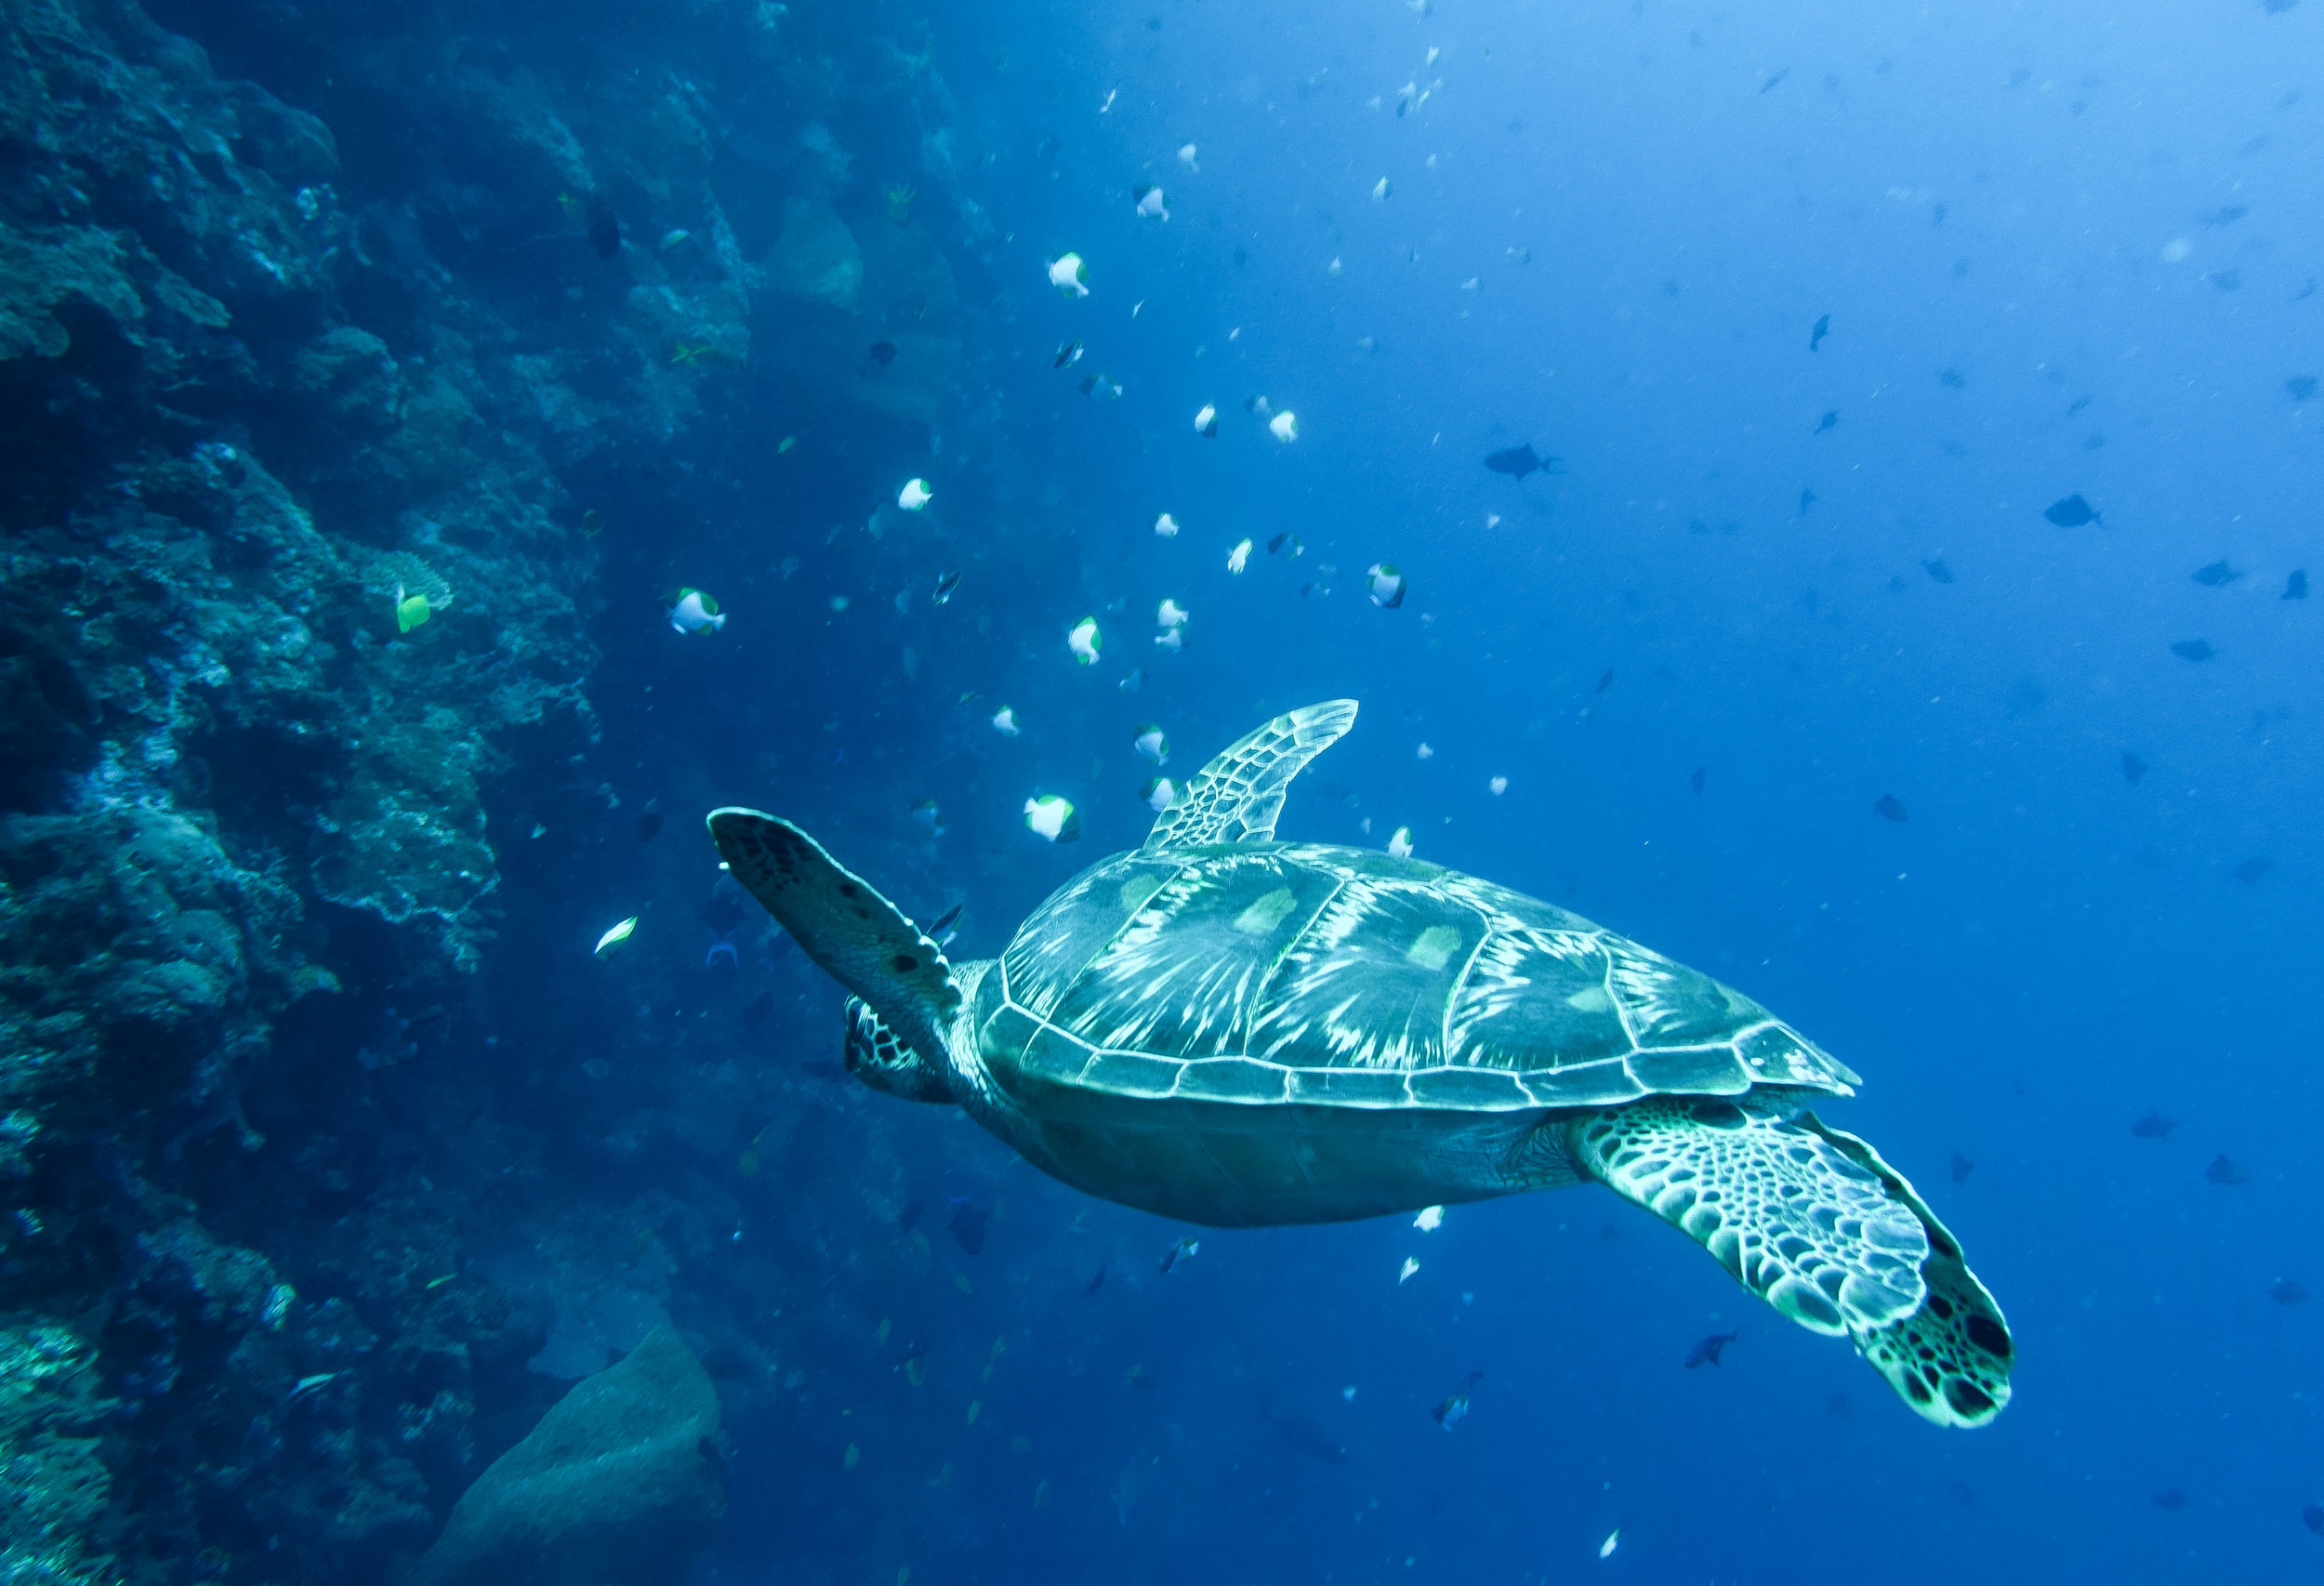 curio.trips.indonesia.diving.turtle.swimming.landscape.jpg